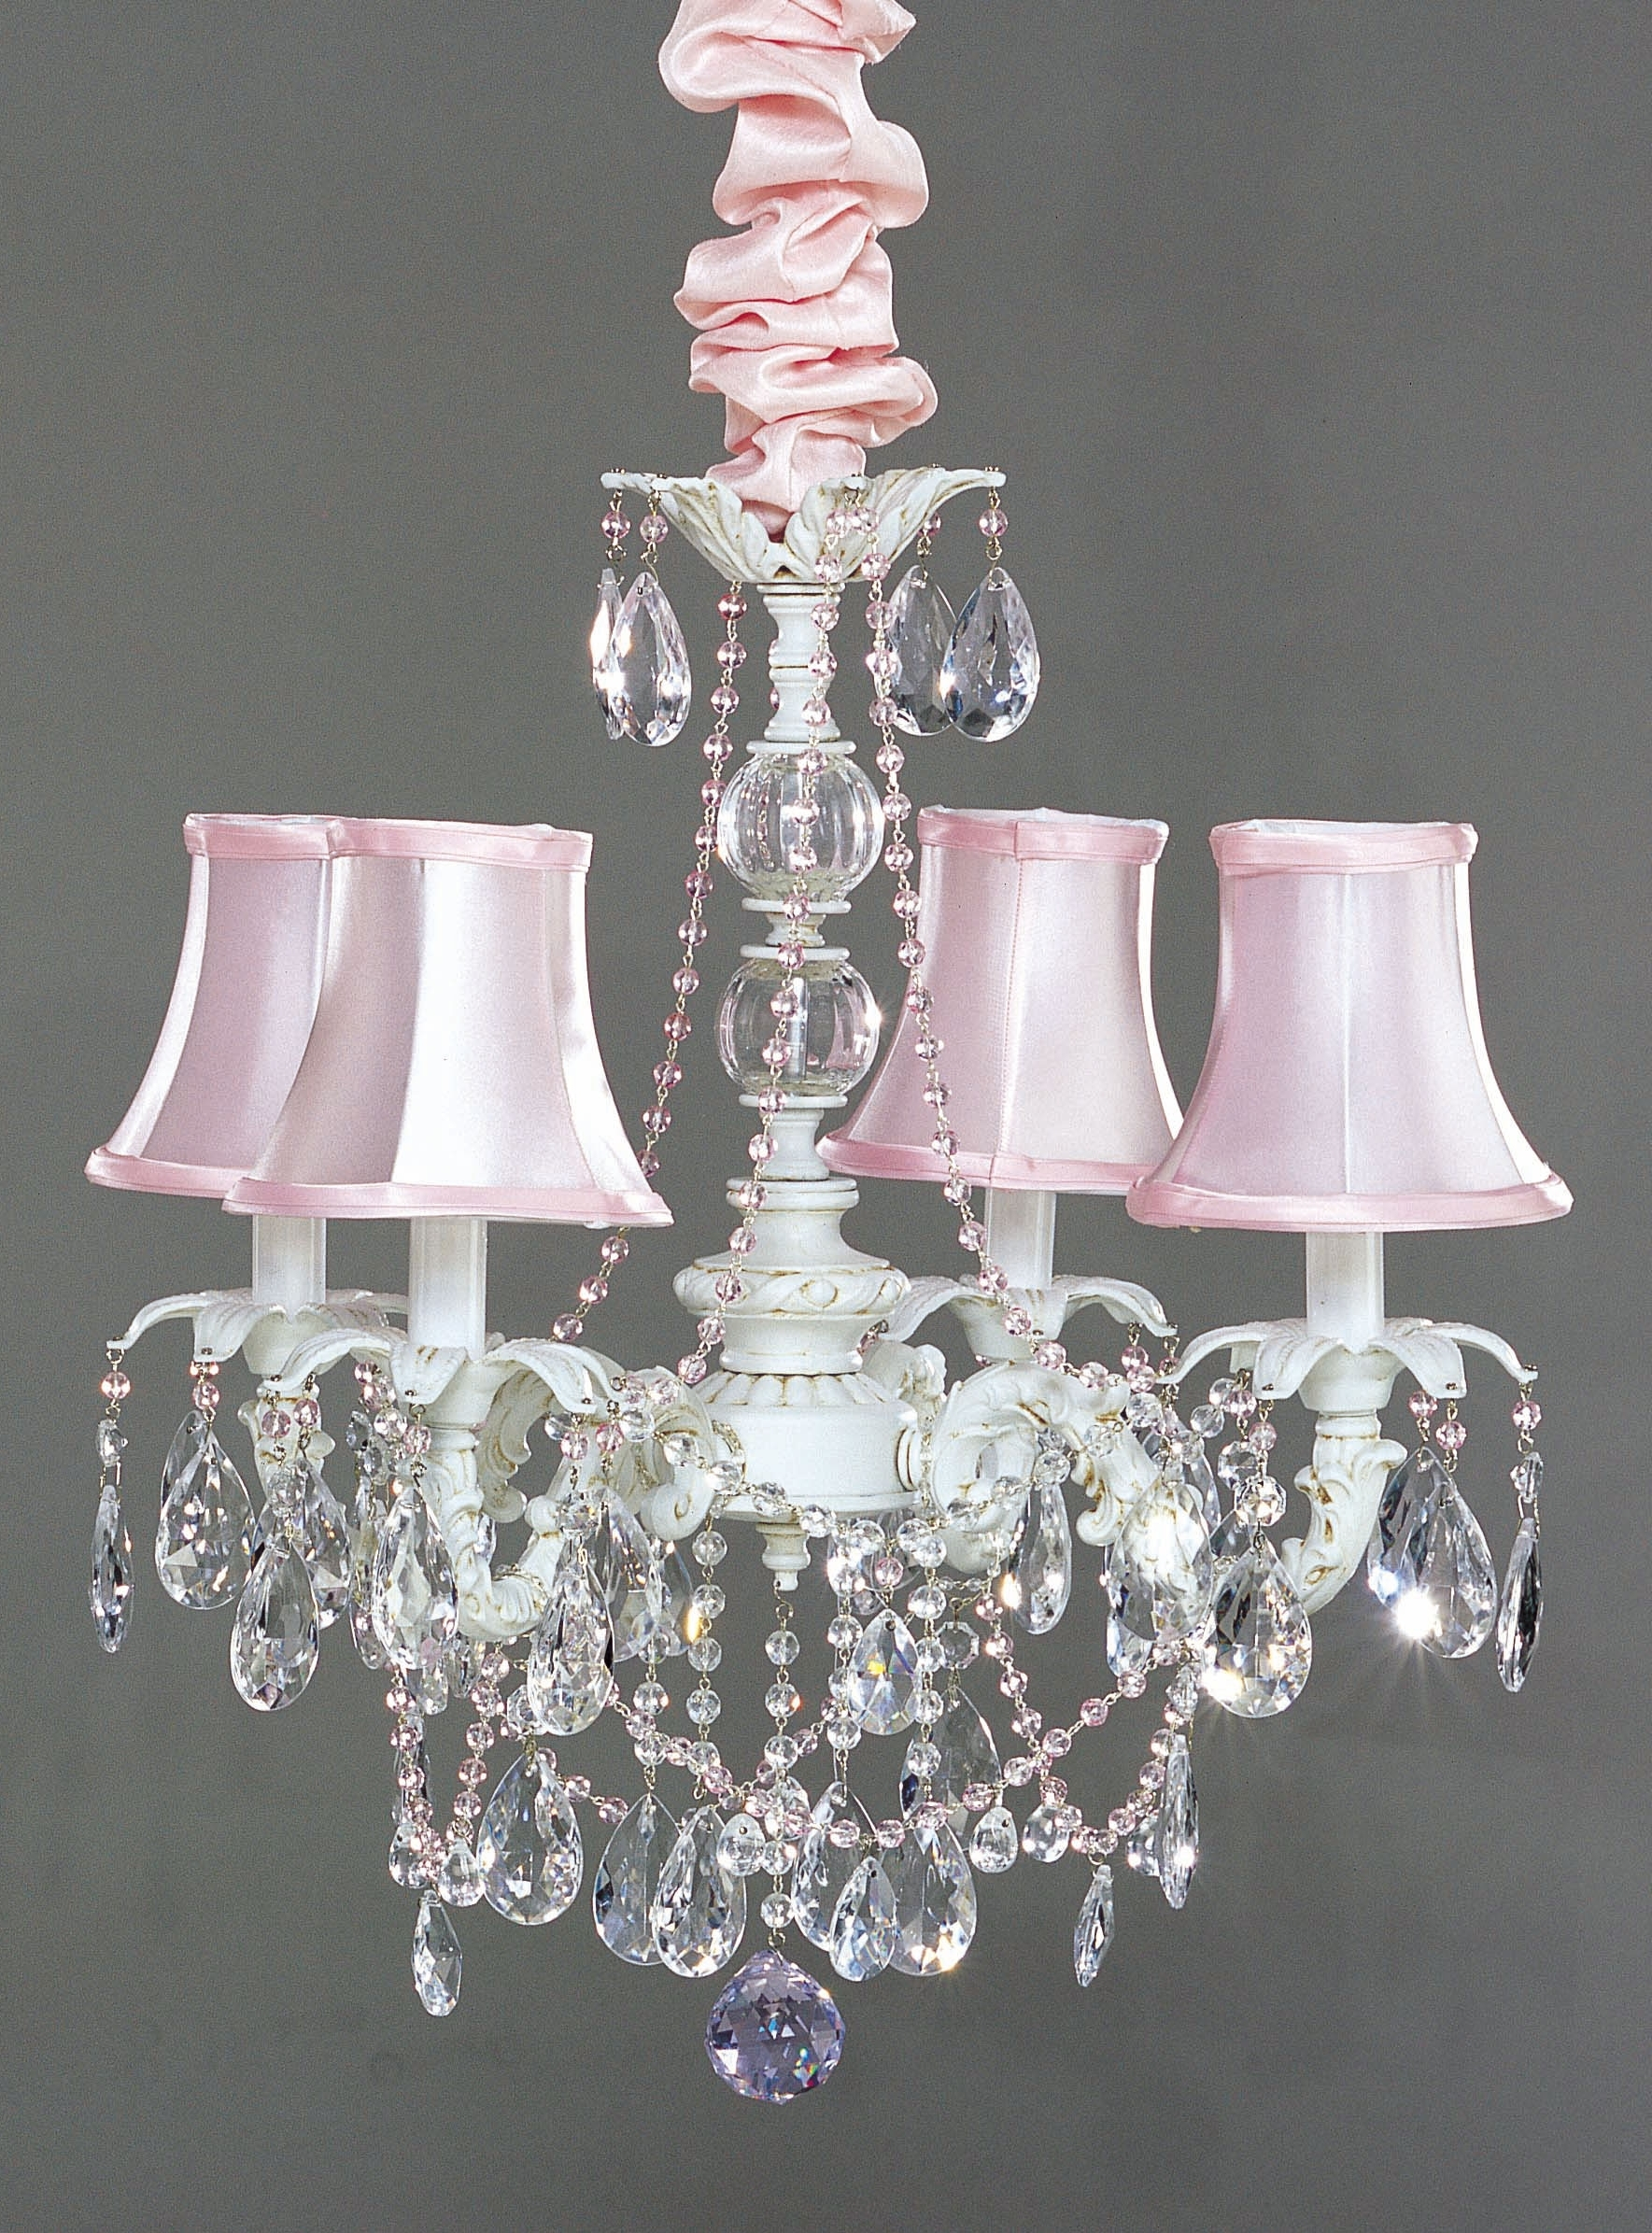 Shabby Chic Chandeliers Throughout Well Known Shabby Chic Chandeliers Amazinghabby Table Lamp Lighting Crystal (View 15 of 15)